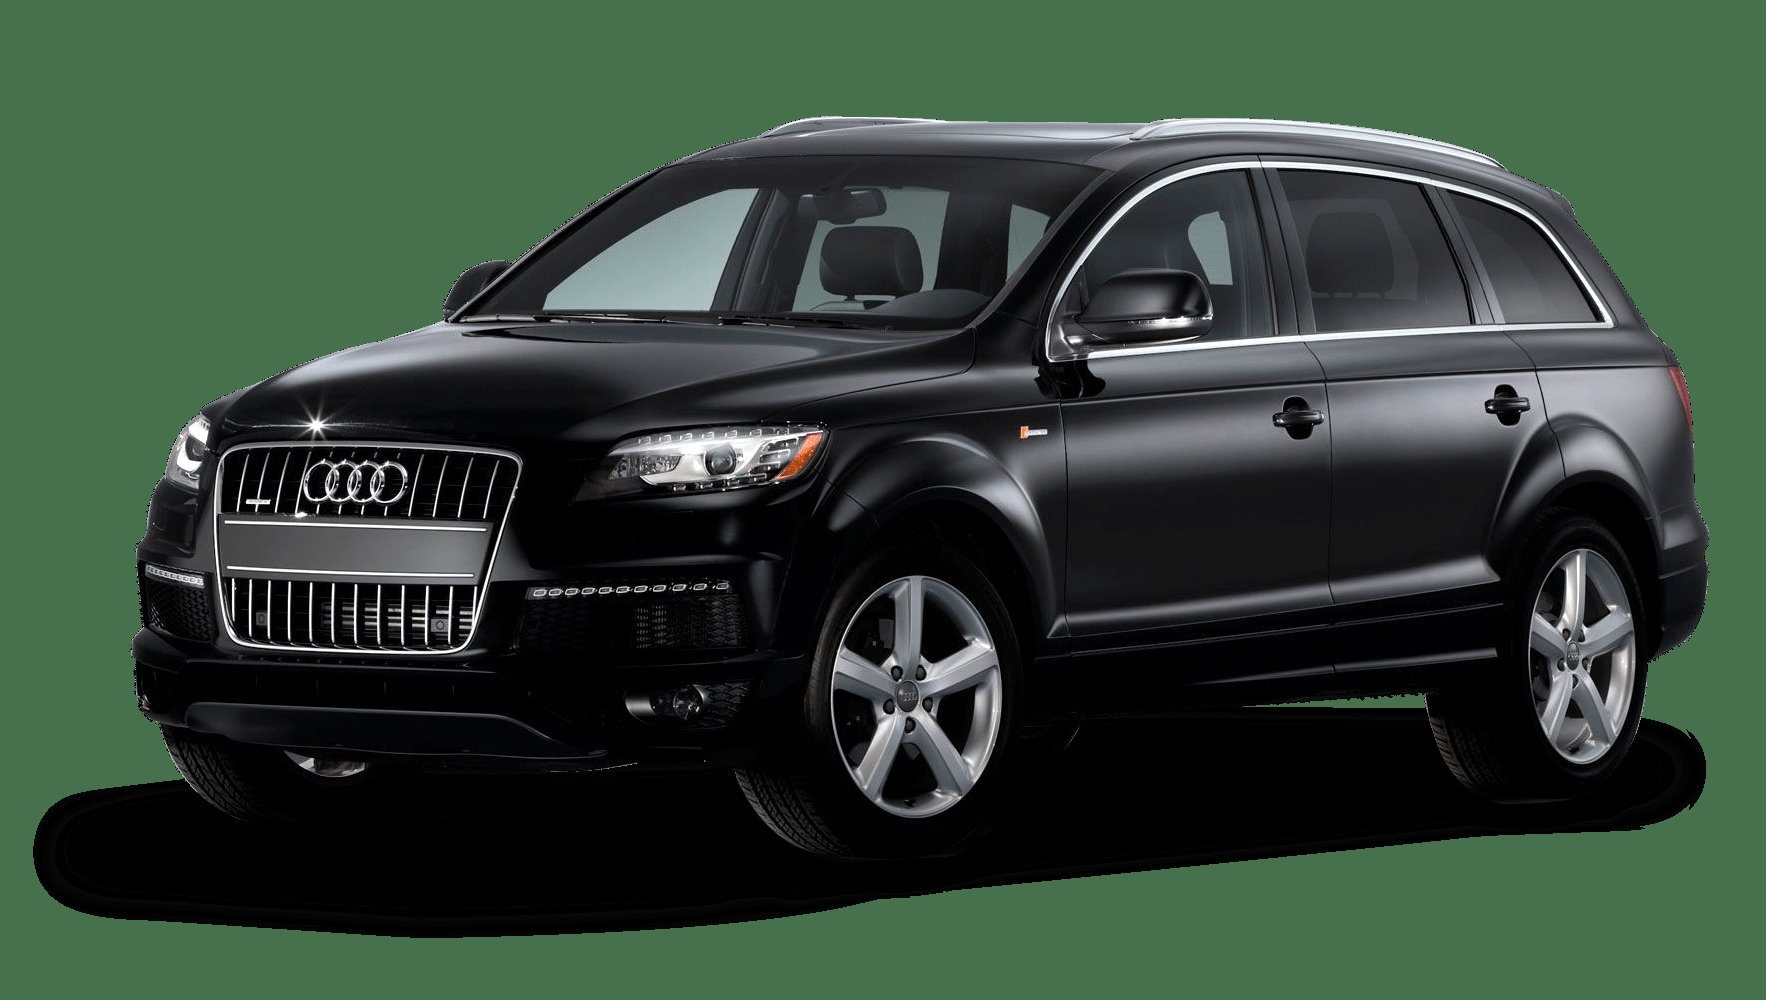 Latest Audi Q7 Car Png Image Pngpix Free Download